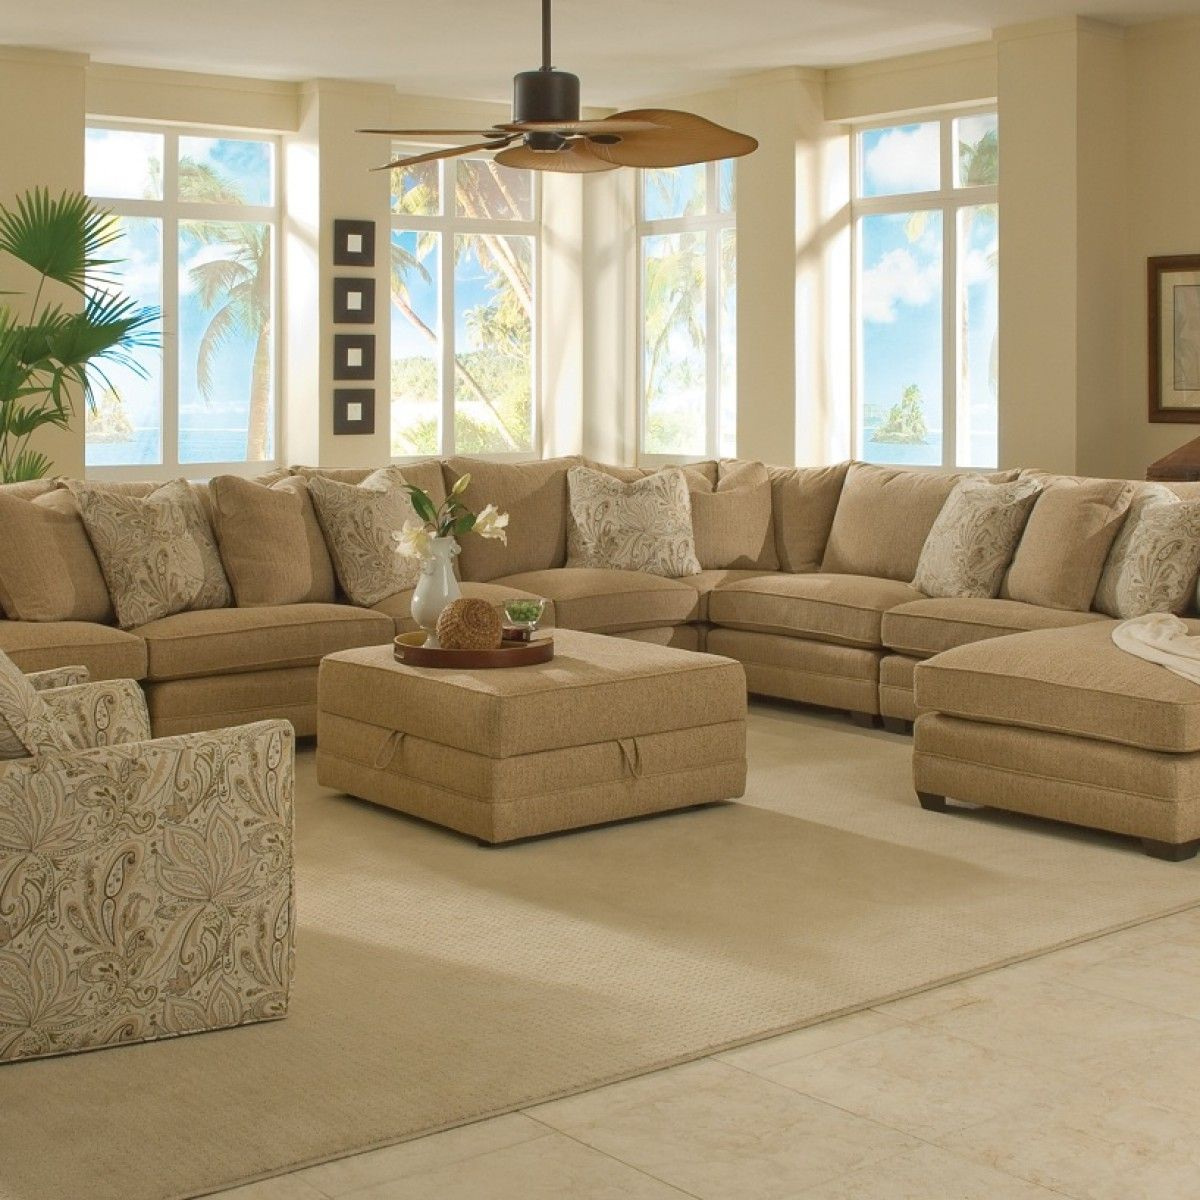 Magnificent Large Sectional Sofas Family Room Pinterest Large Sectional Living Rooms And Room